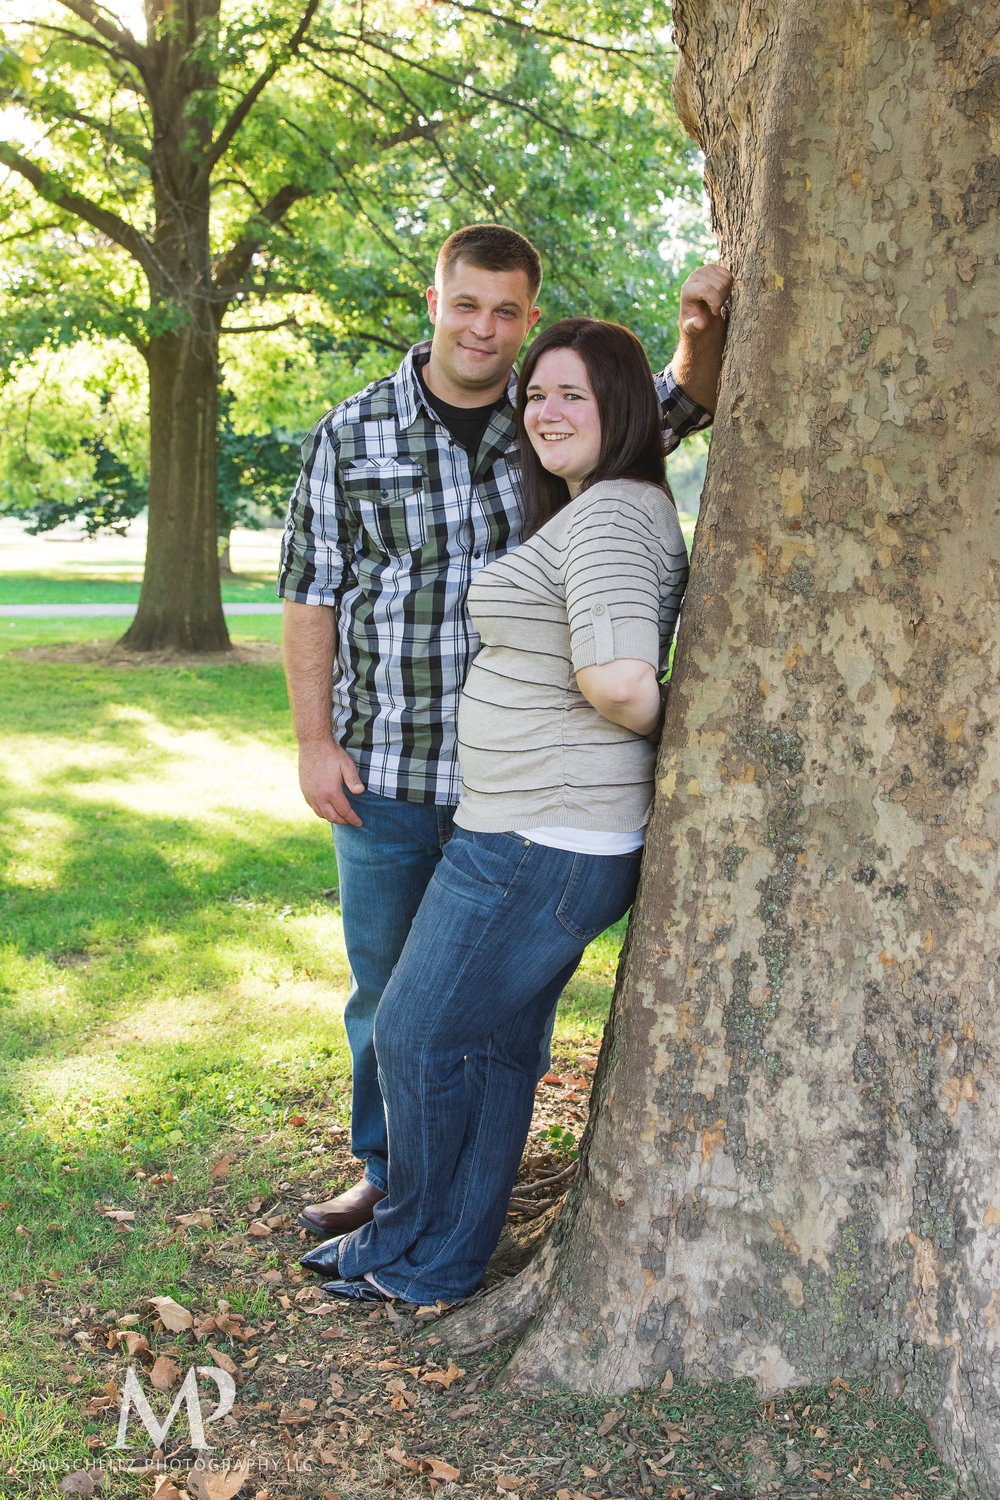 schiller-park-german-village-columbus-ohio-engagement-portrait-session-muschlitz-photography-001.JPG